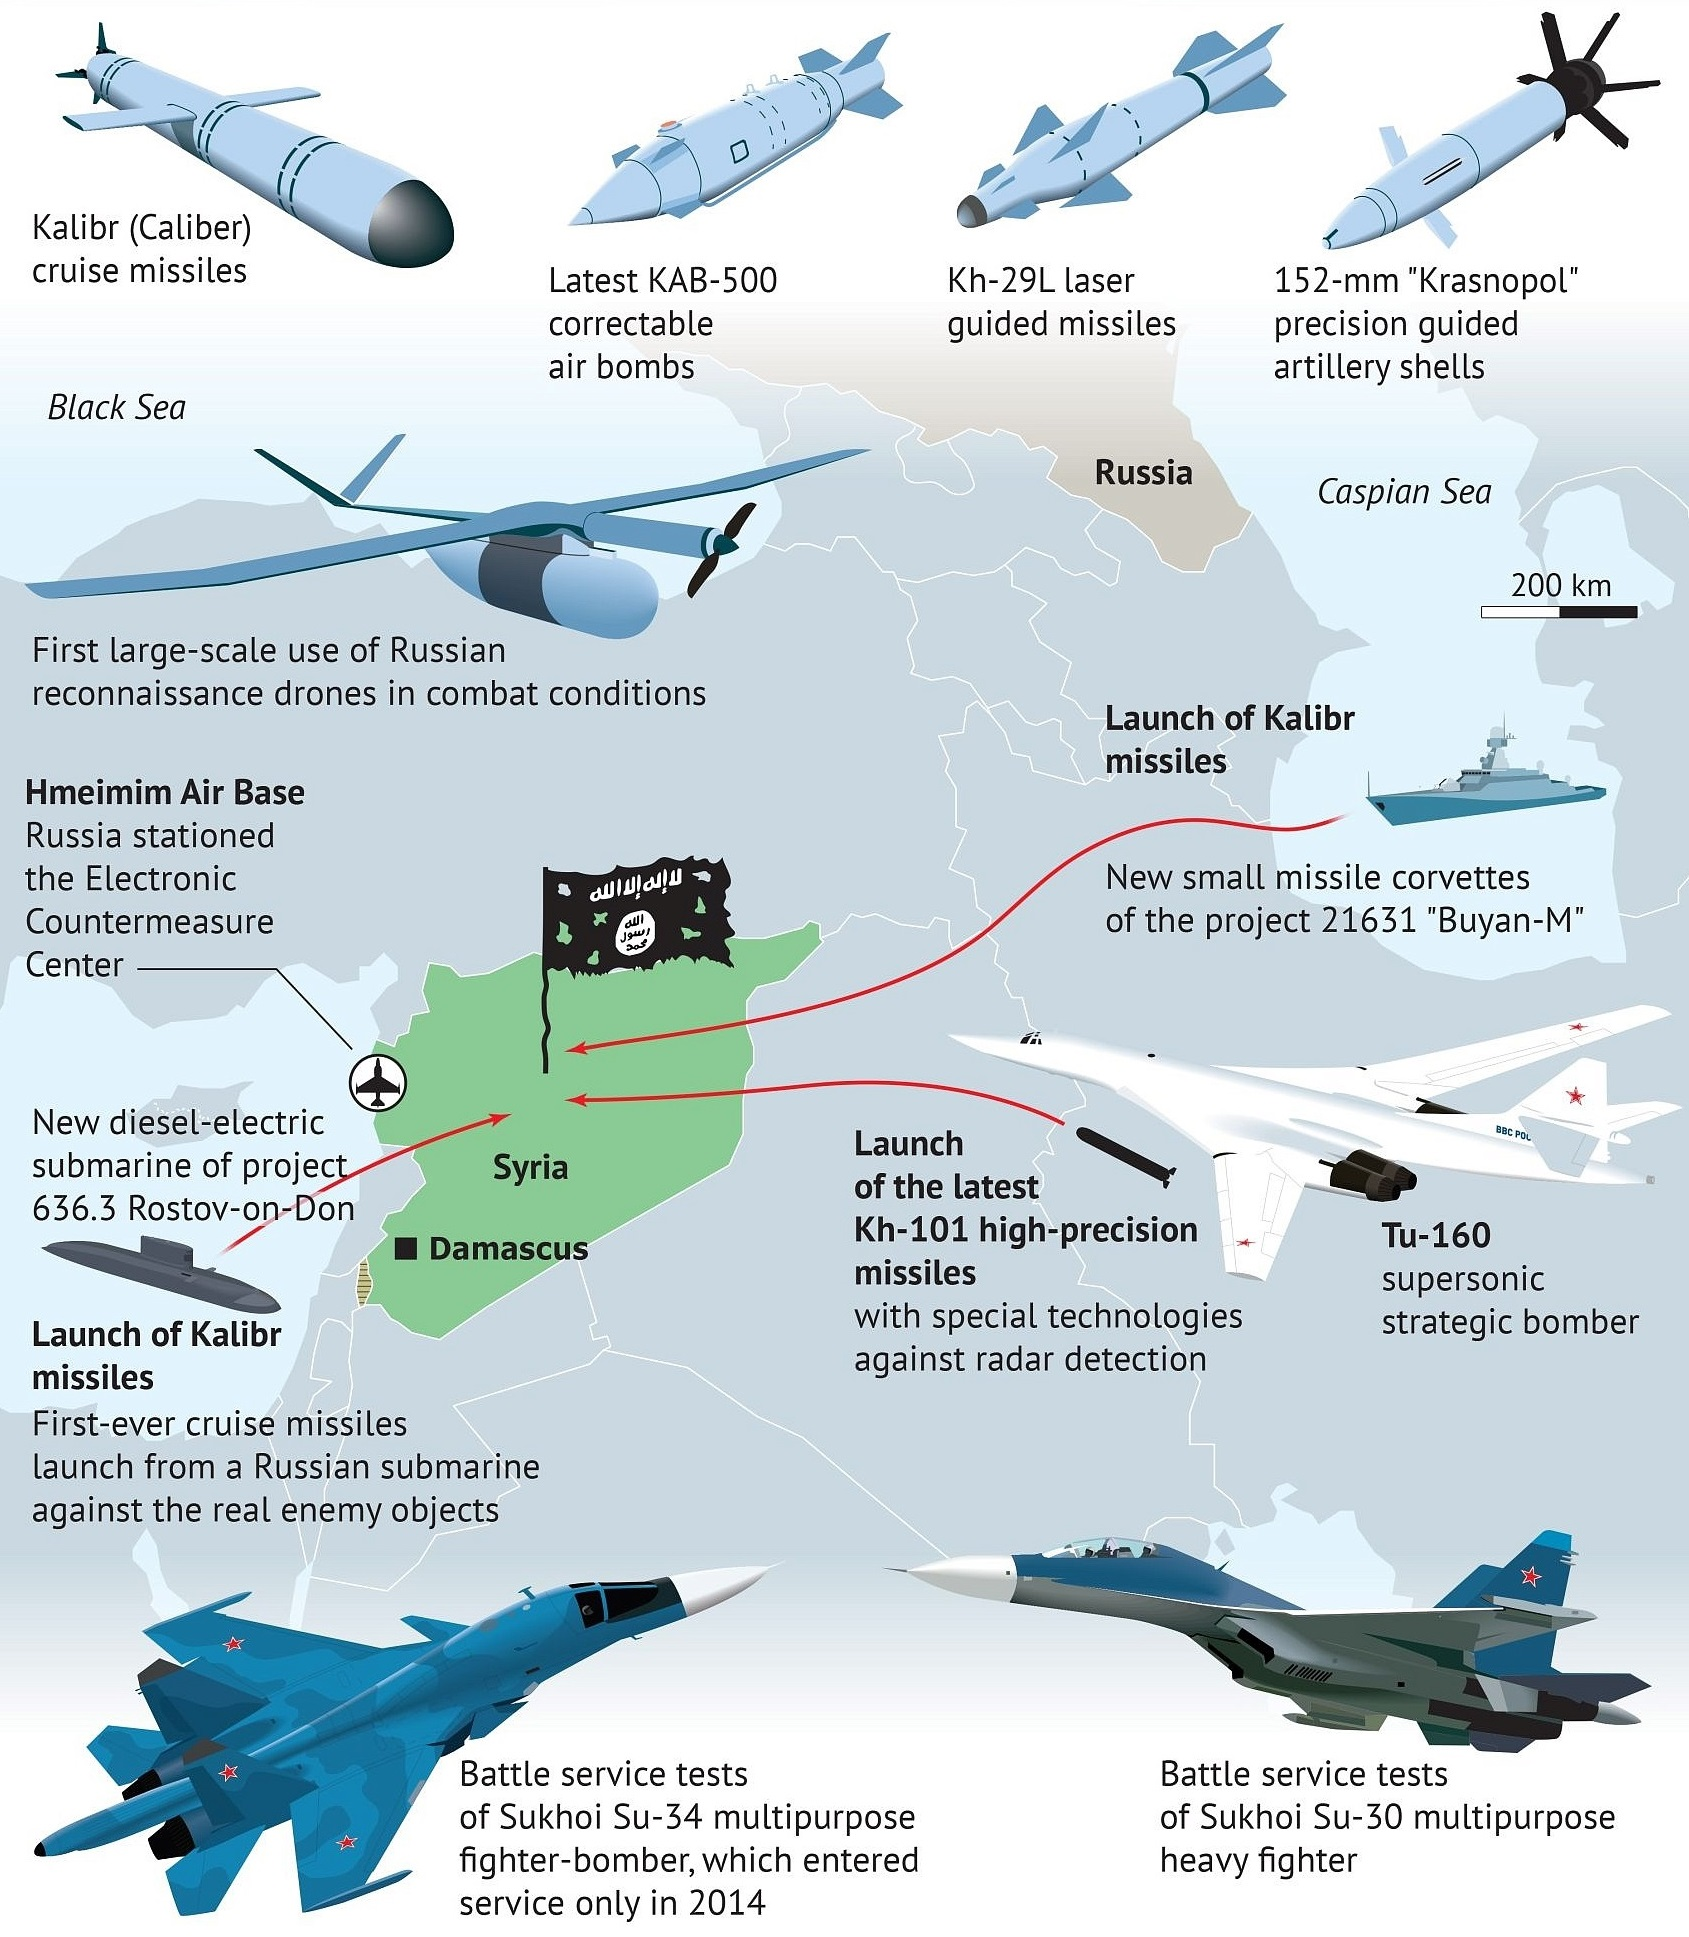 Here S How Russian Forces Battled To Victory In Syria